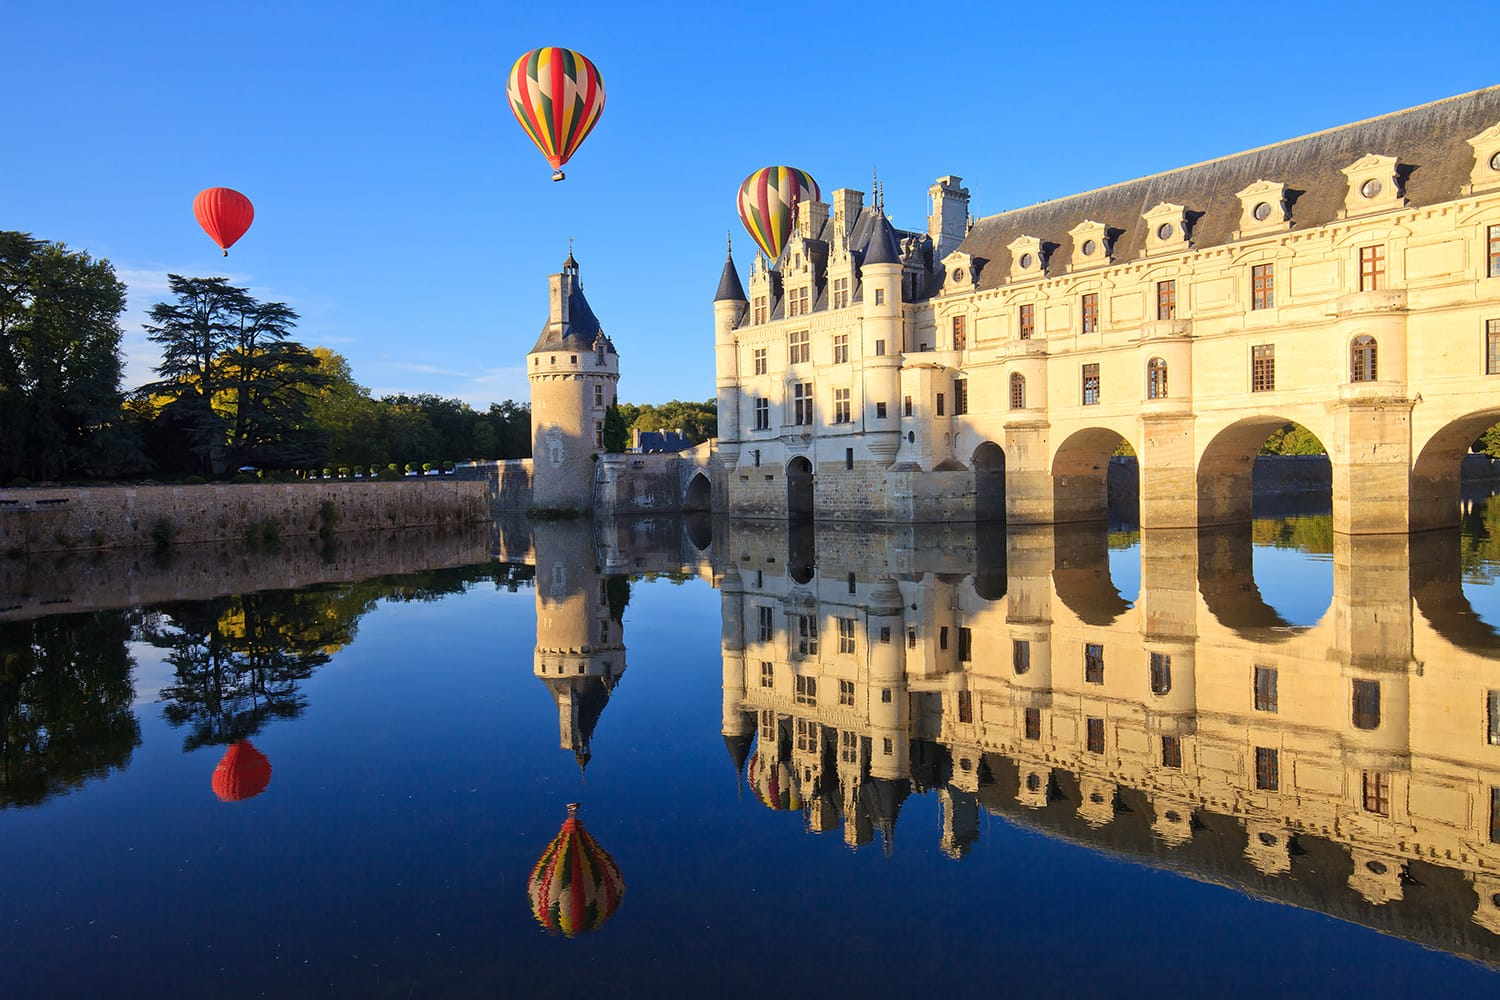 Hot air balloons over Chateau de Chenonceau in the Loire Valley, France